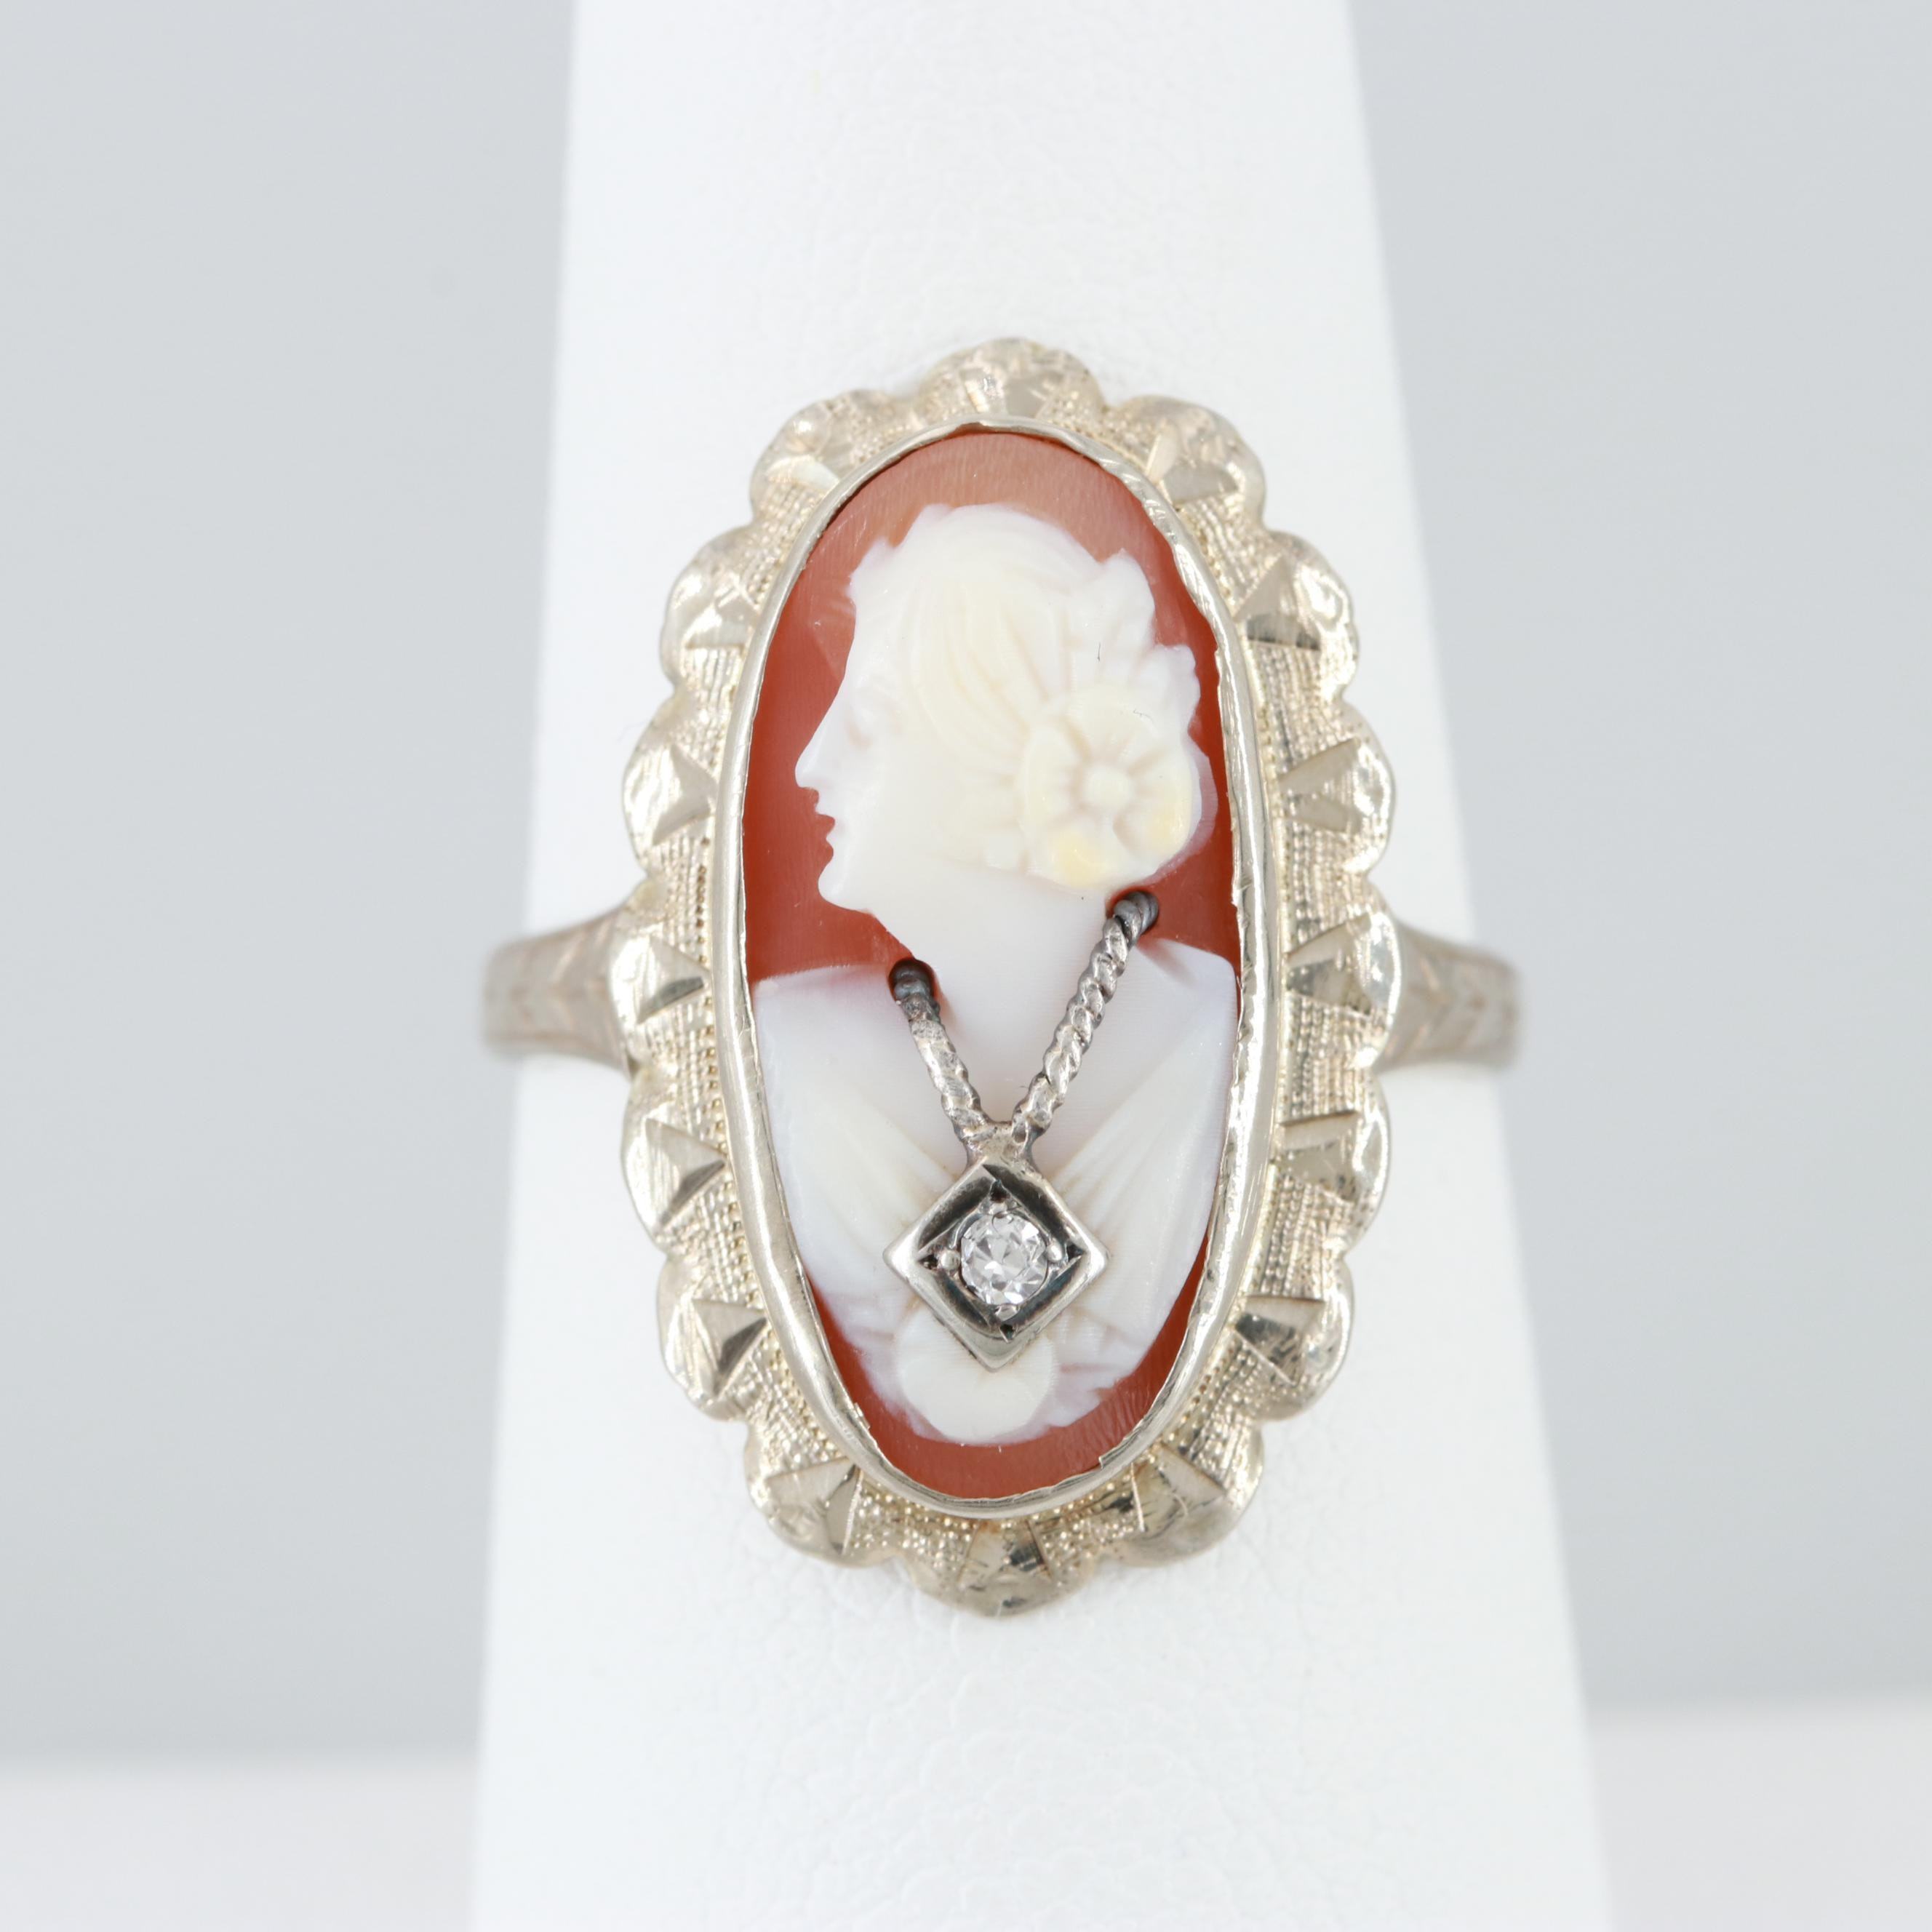 Vintage 14K White Gold Helmet Shell and Diamond Habillé Cameo Ring